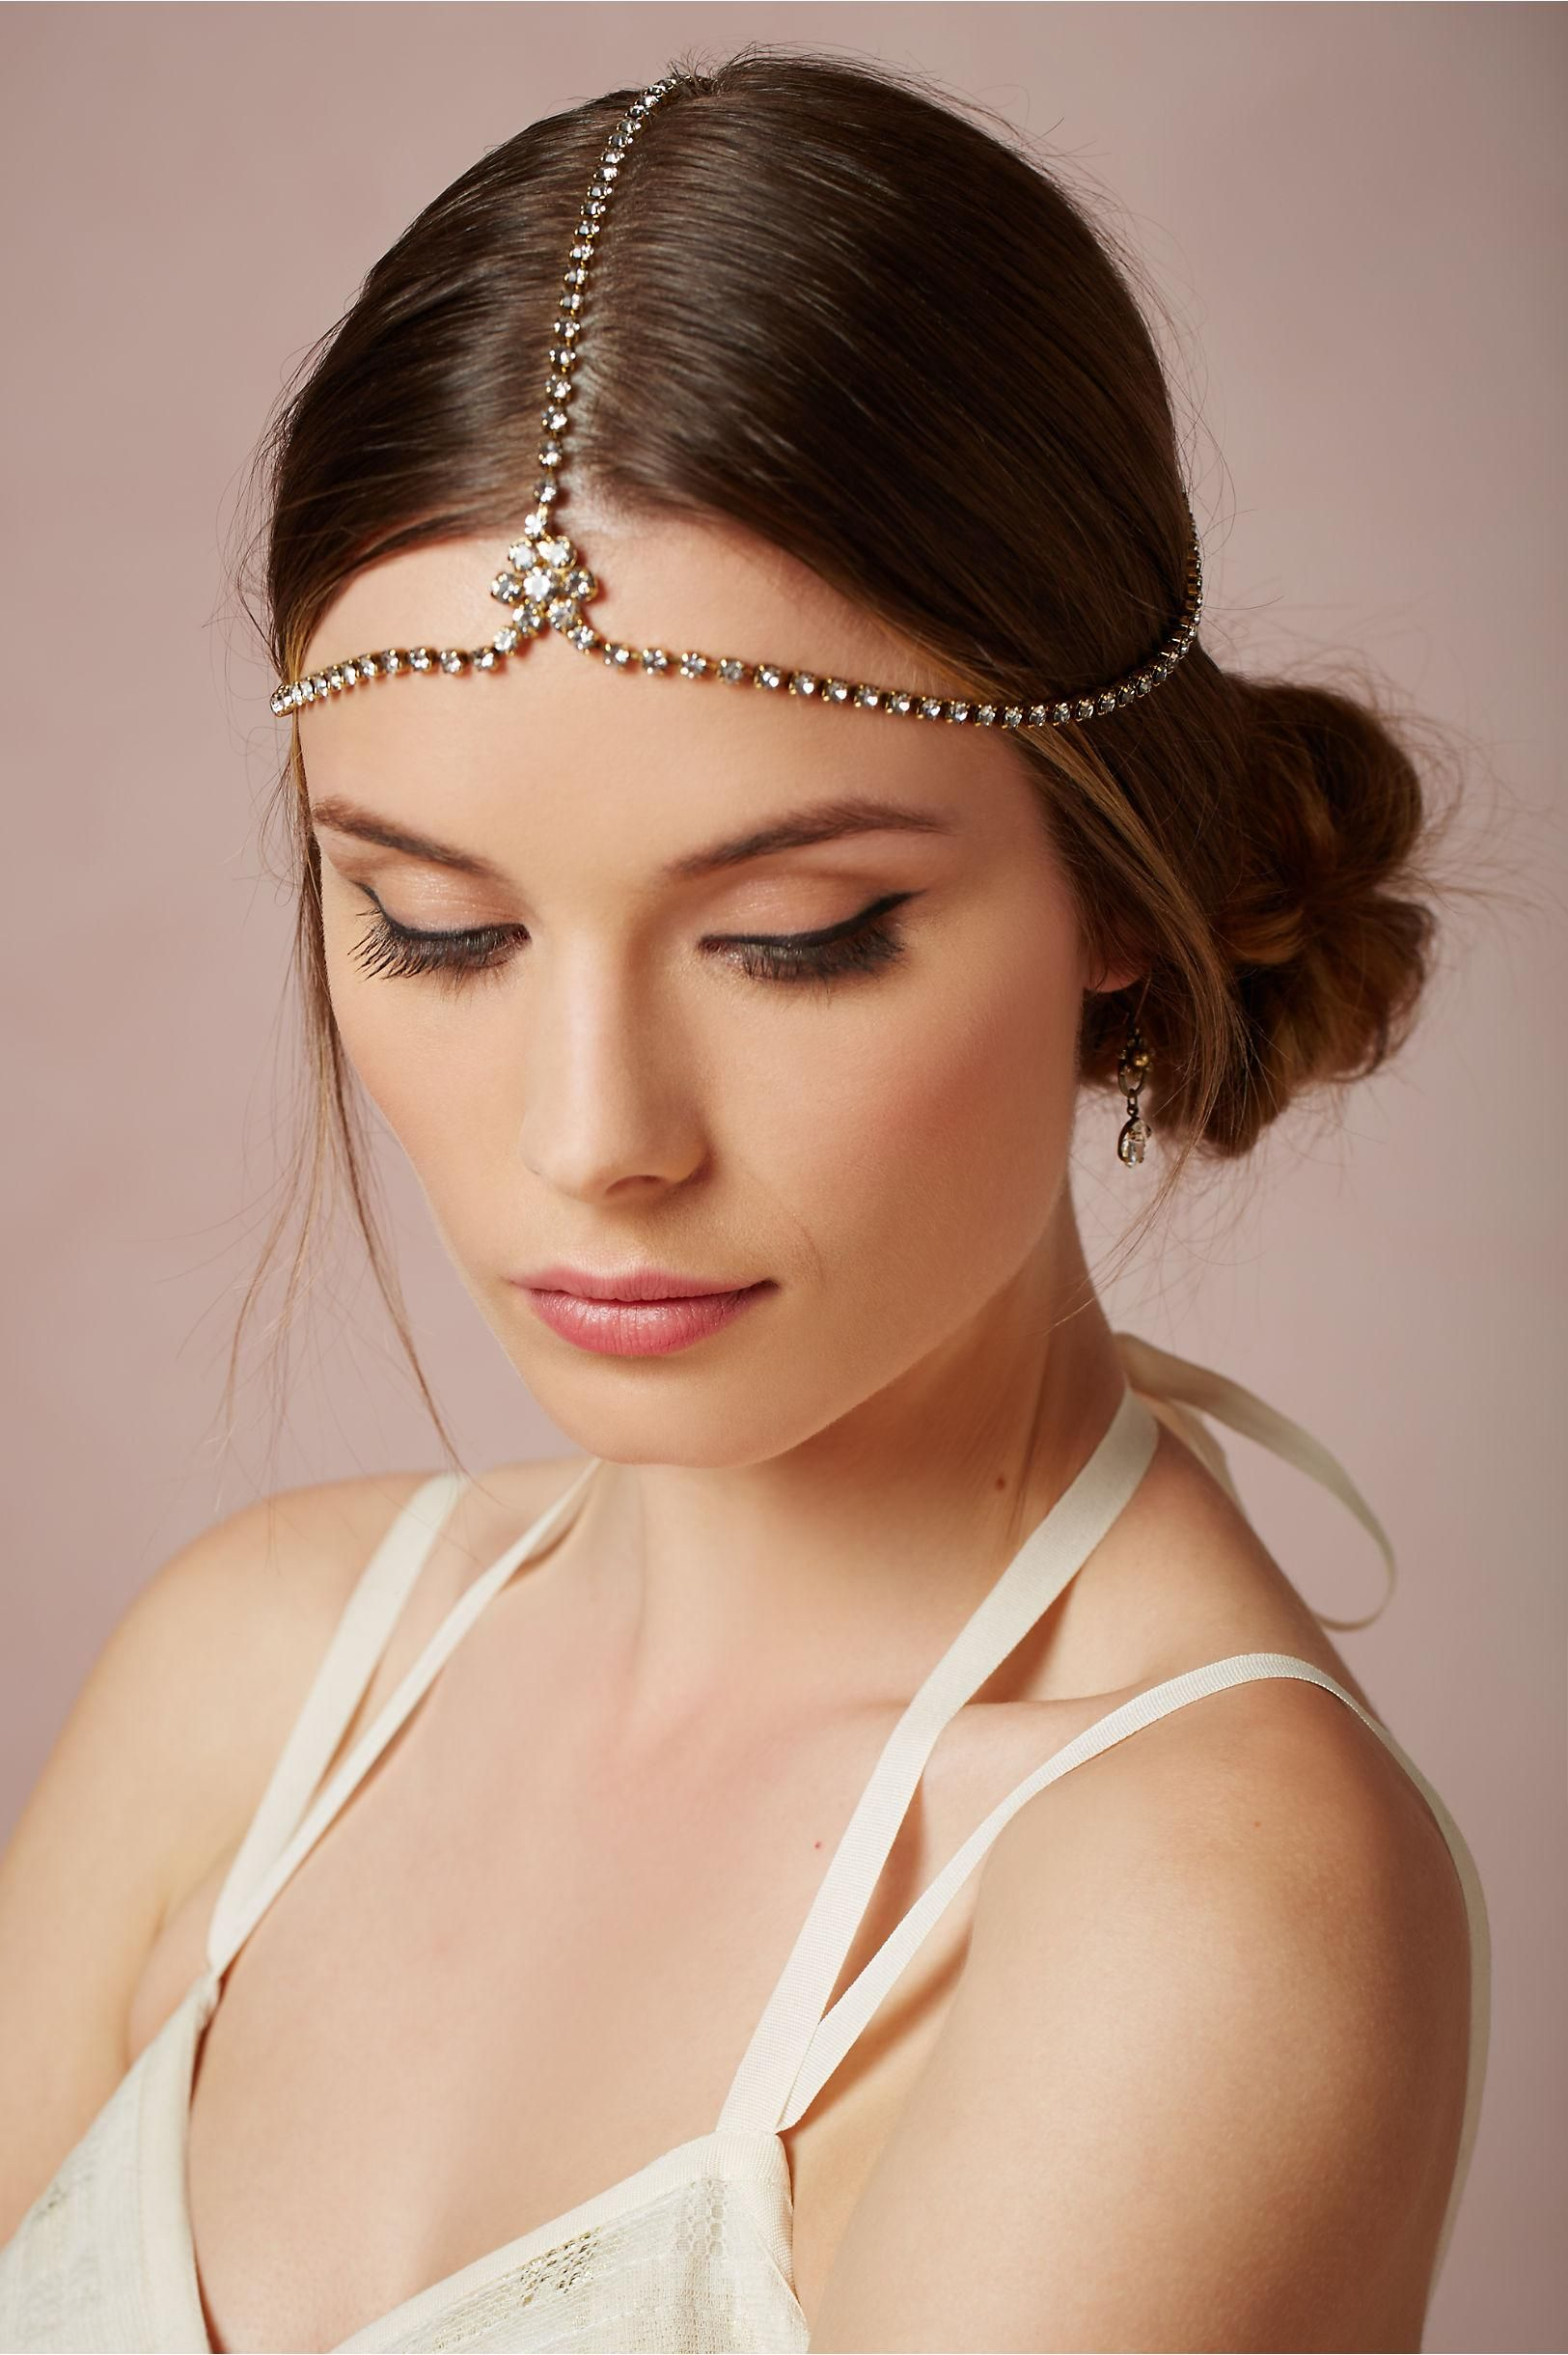 Regnant halo from bhldn inspired by drippy deco bridal headpieces